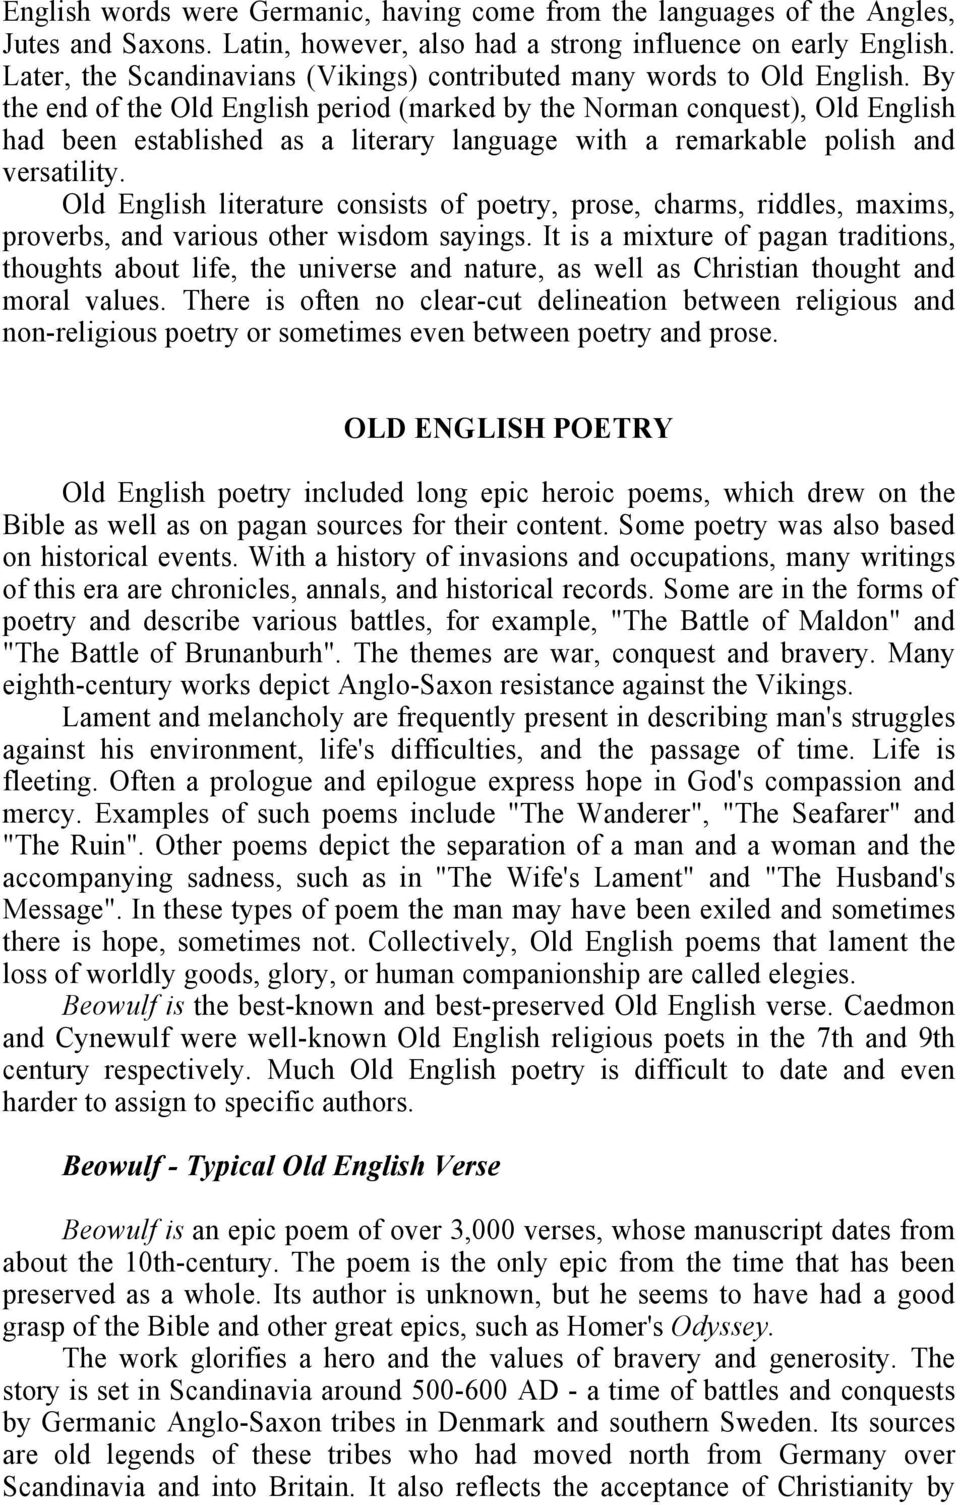 Old English Literature Pdf Free Download